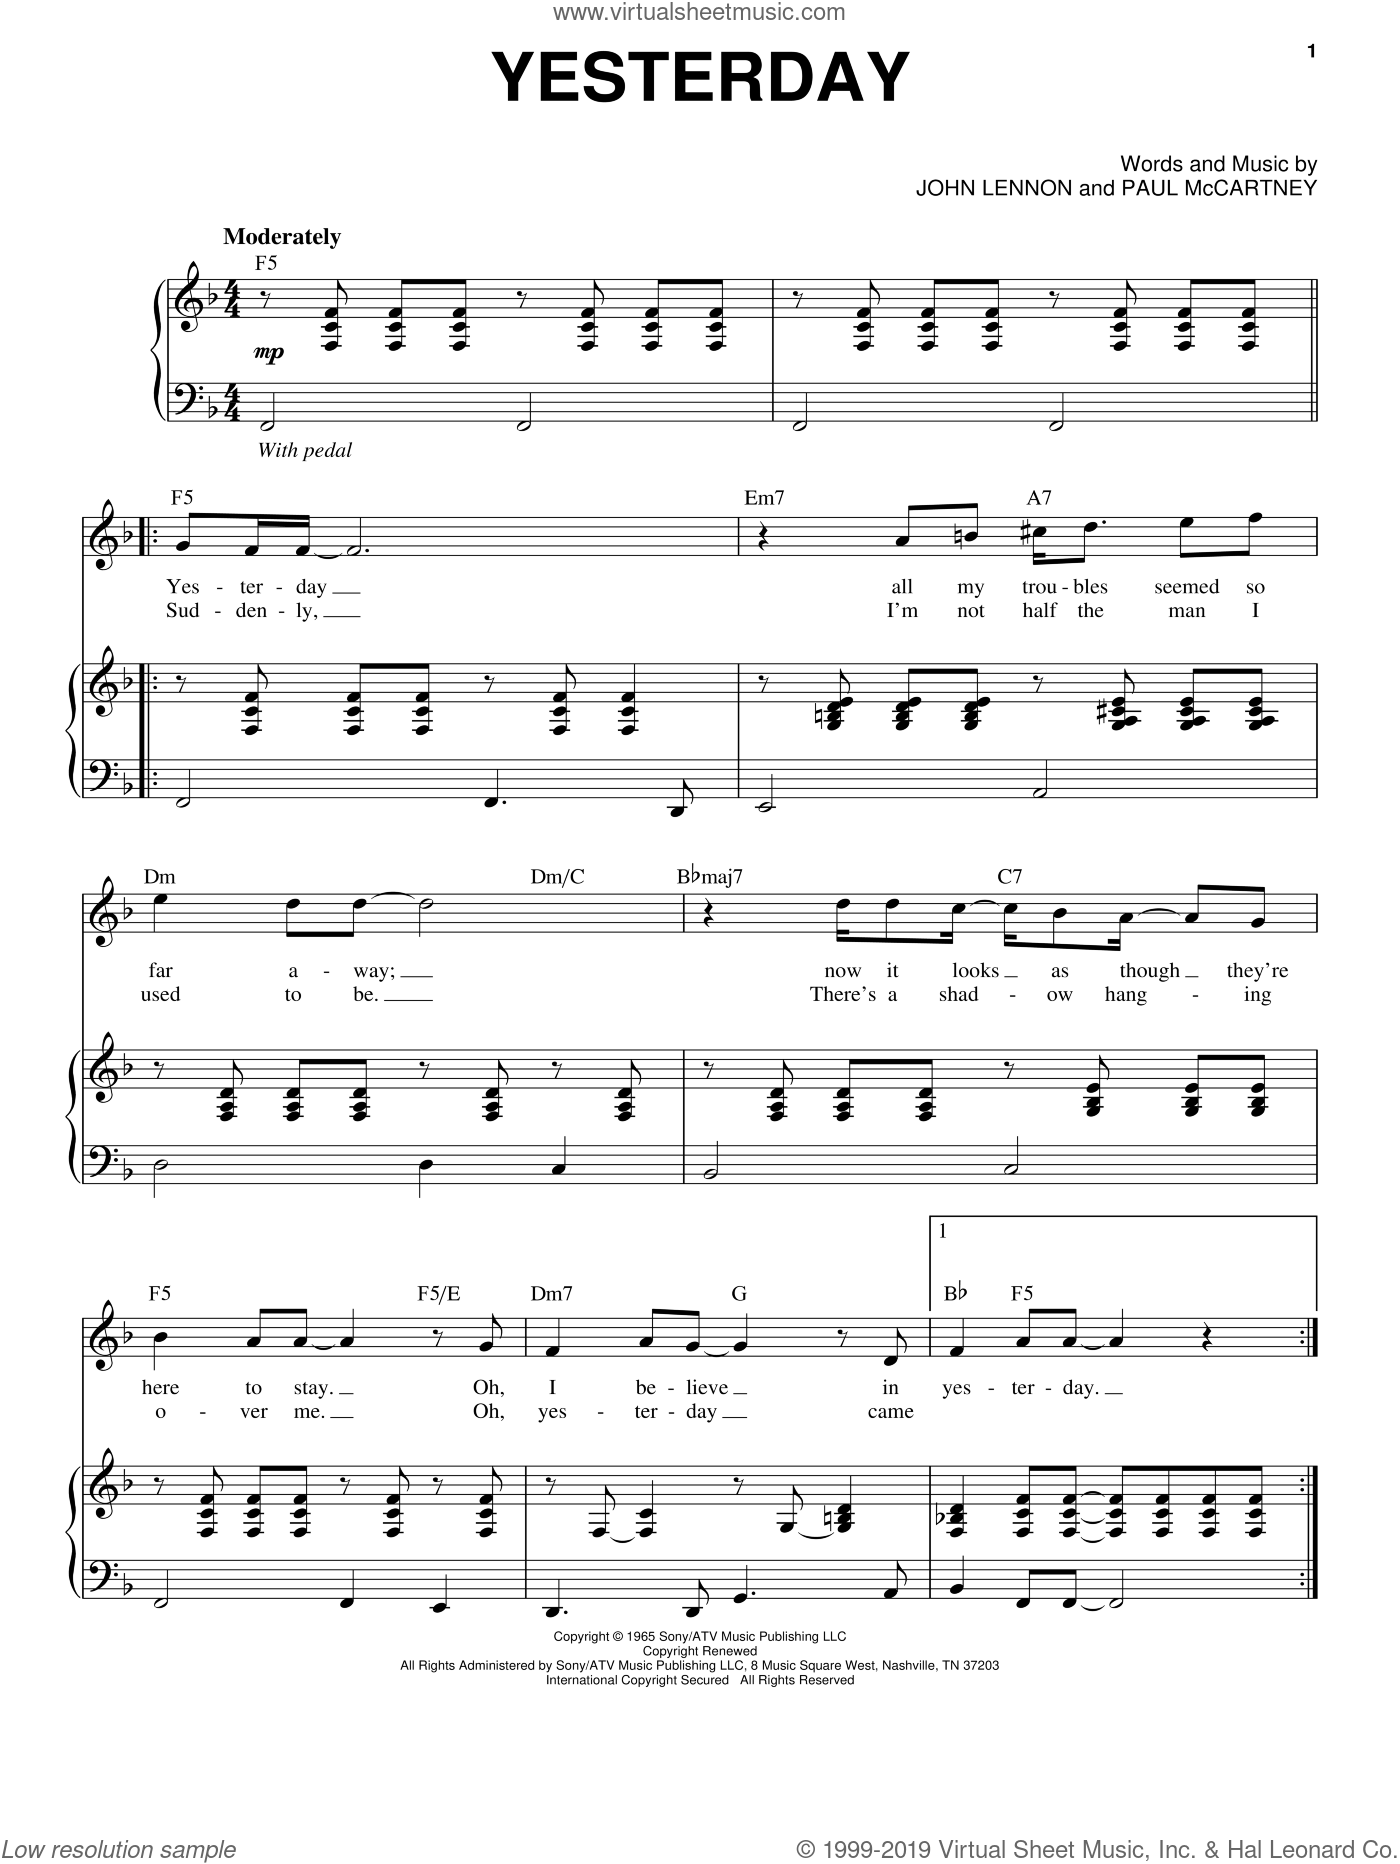 Yesterday sheet music for voice and piano by The Beatles, John Lennon and Paul McCartney, intermediate skill level